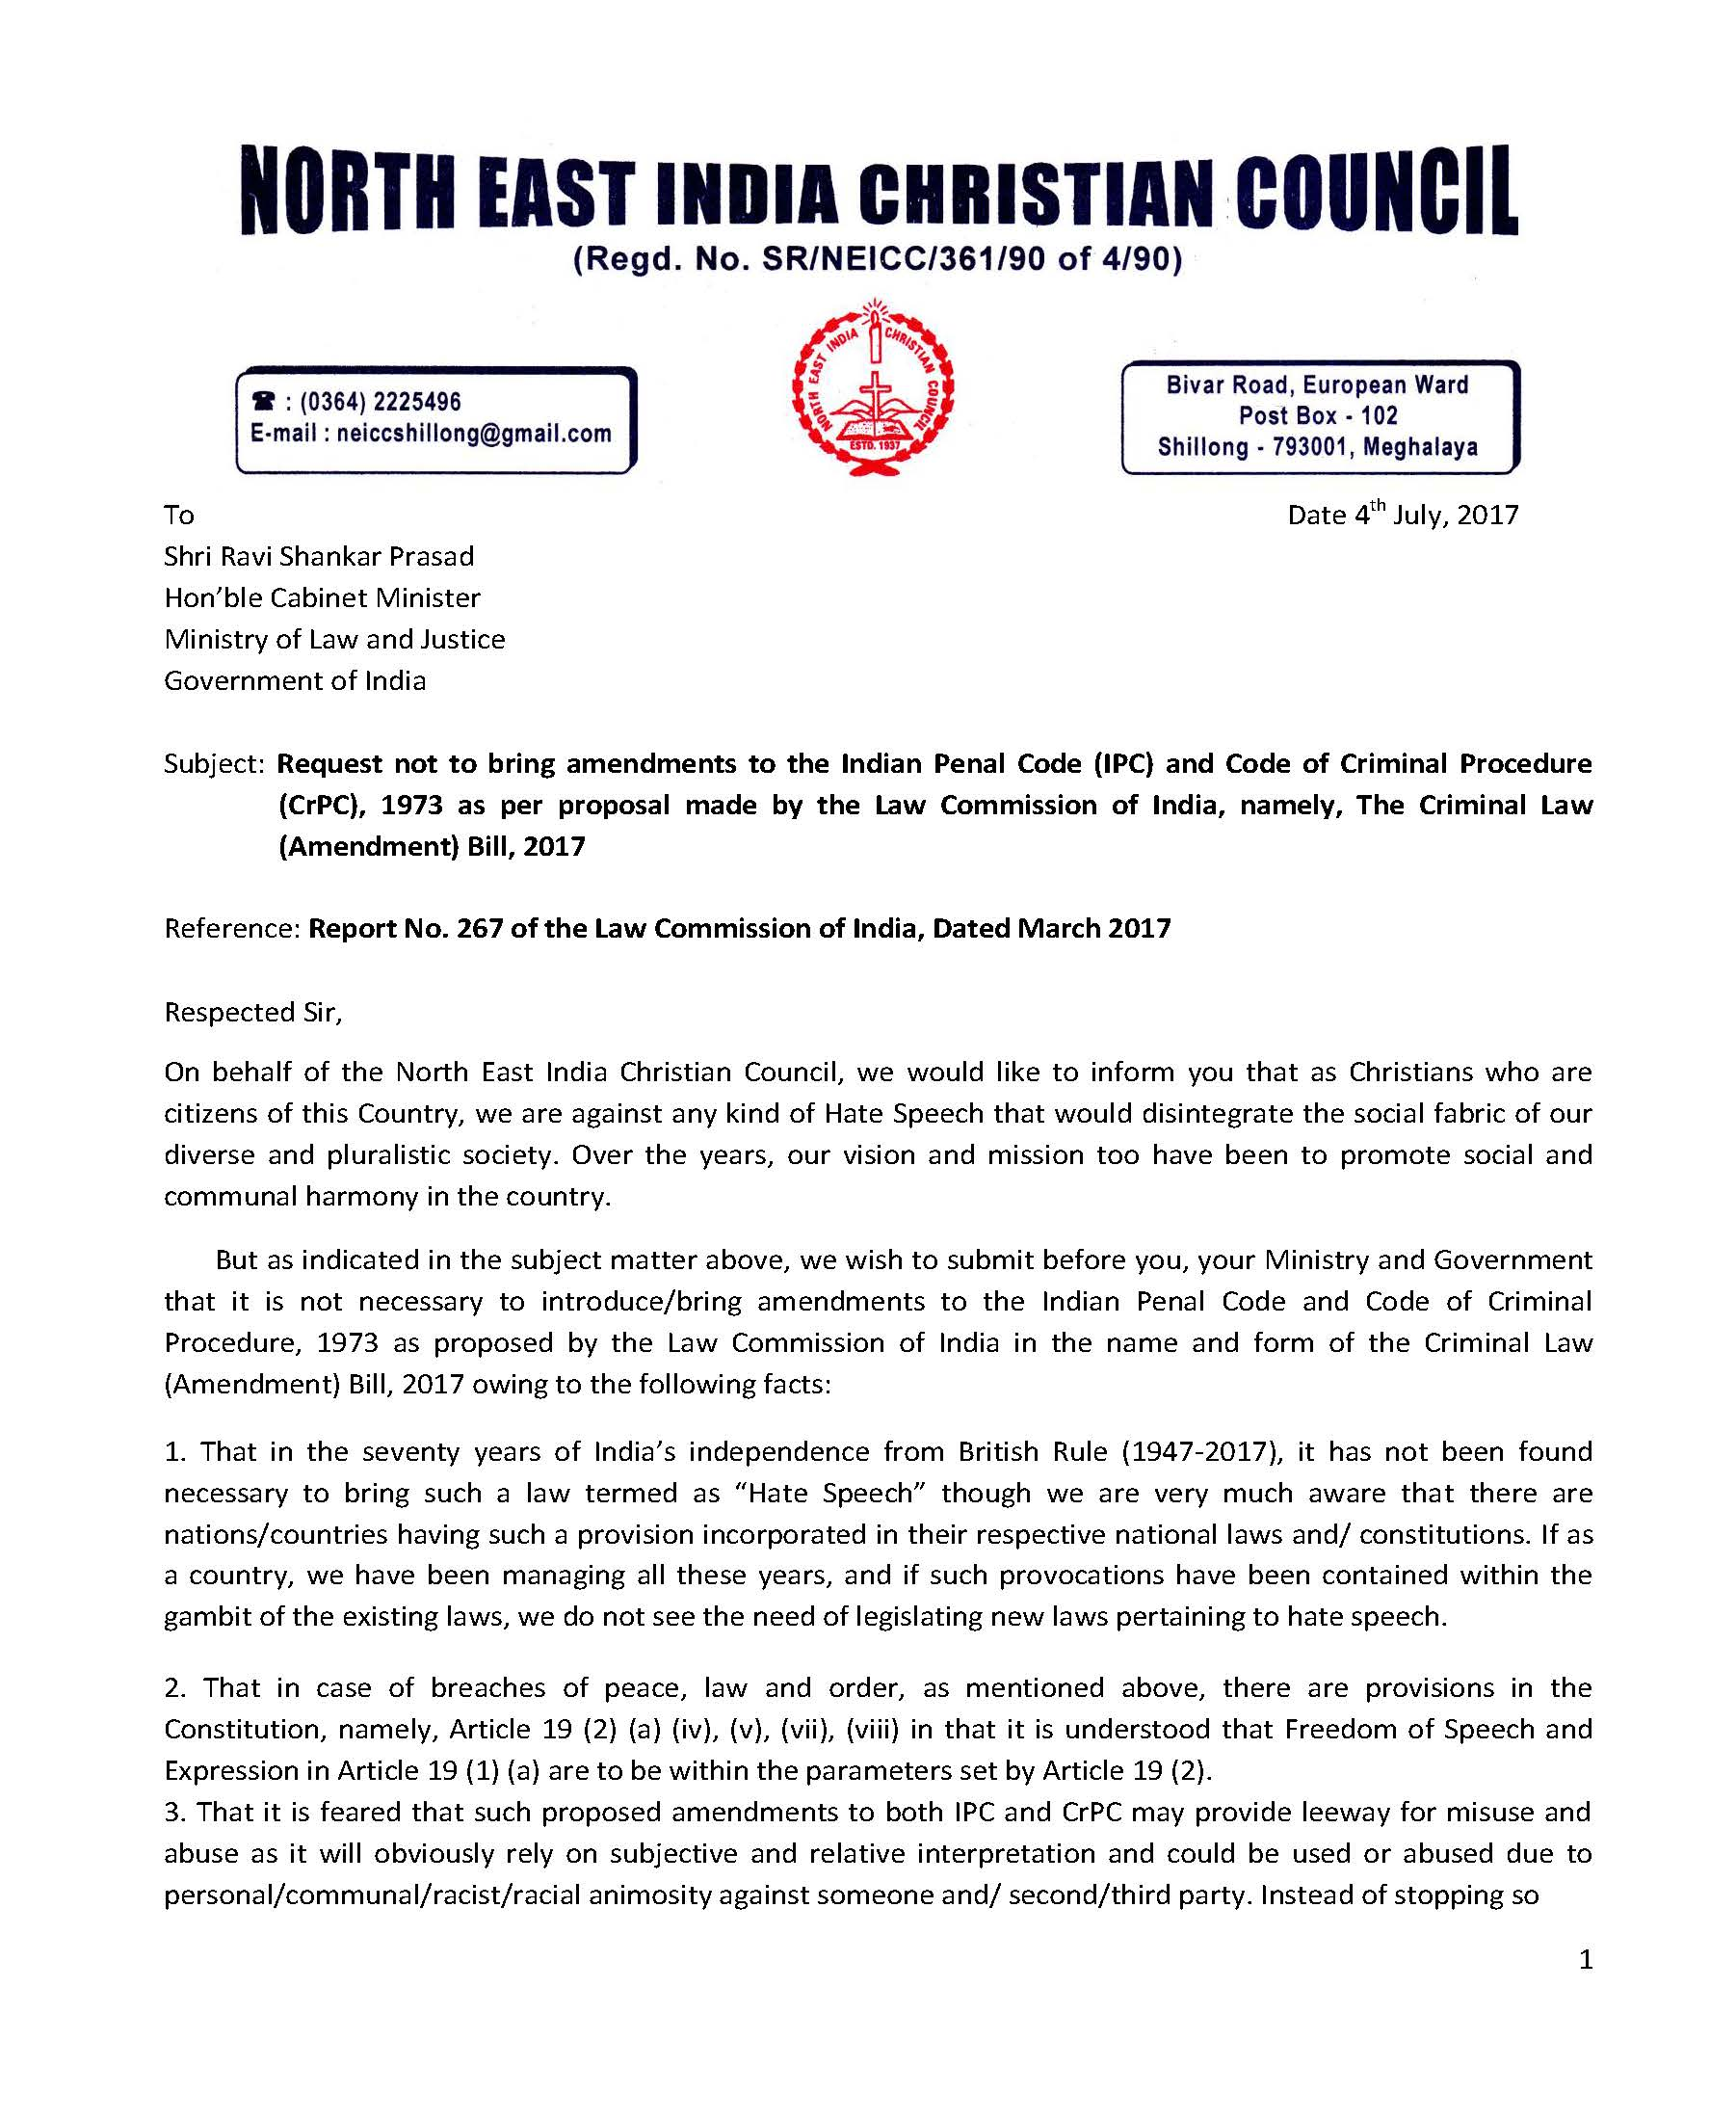 Letter Format To Ministry.  Note If you cannot view the letter in images below this please click on link given to download pdf format NCCI NEICC Ministry of Law and Justice with